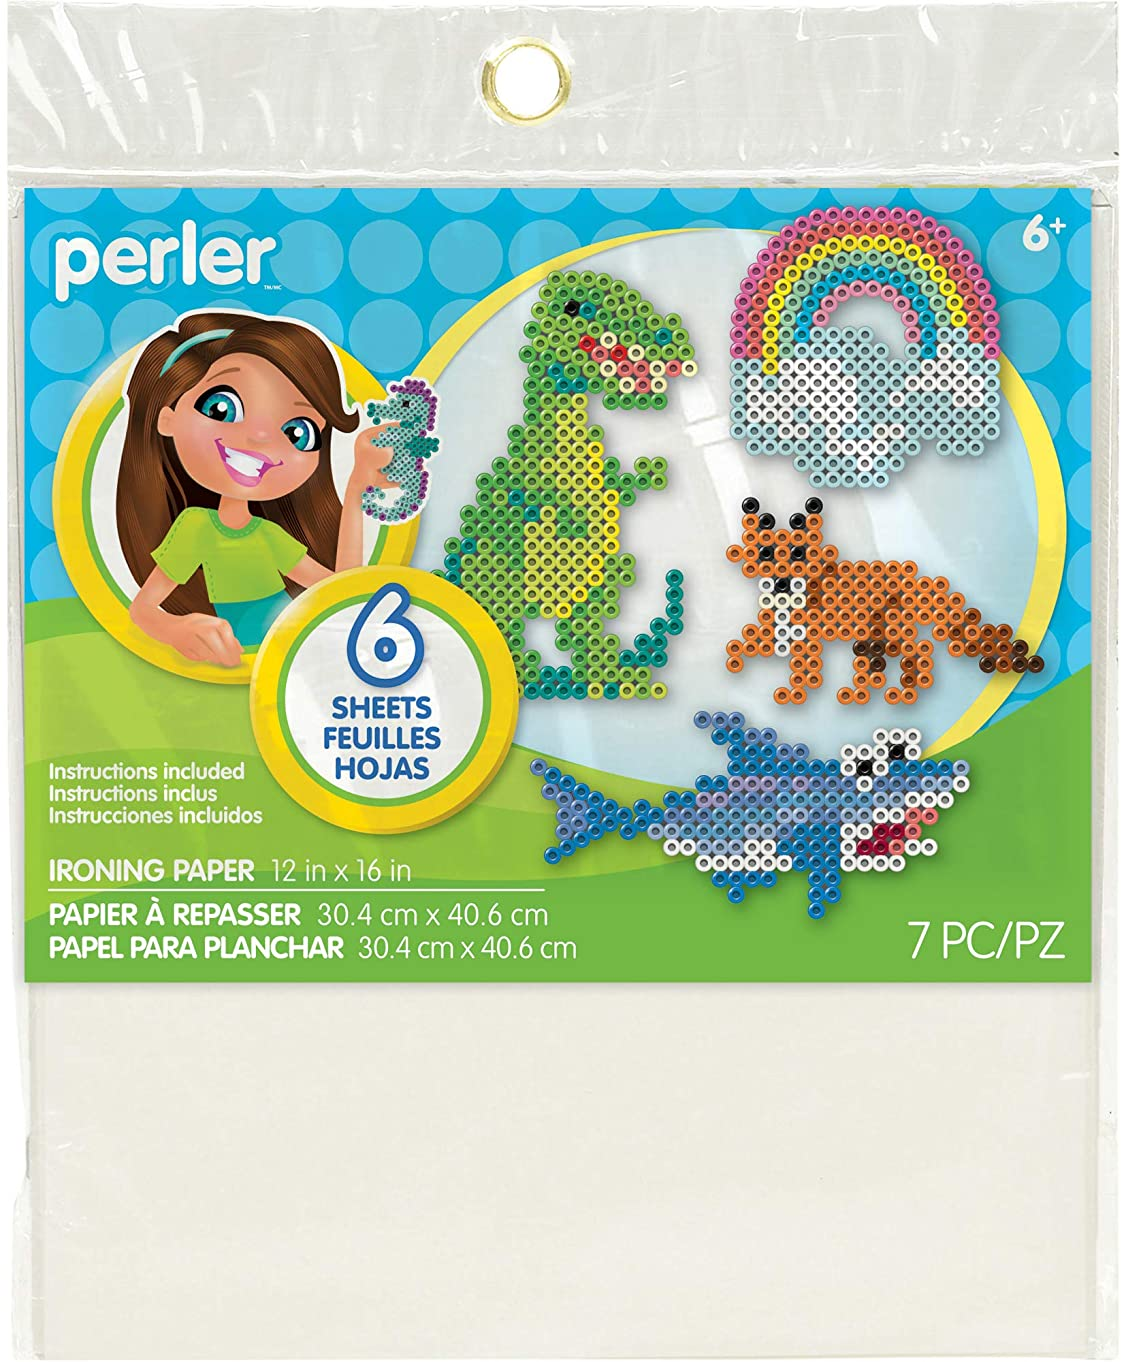 Perler Ironing Paper for Beads Crafts for Kids, 12'' x 16'', 7 Pieces